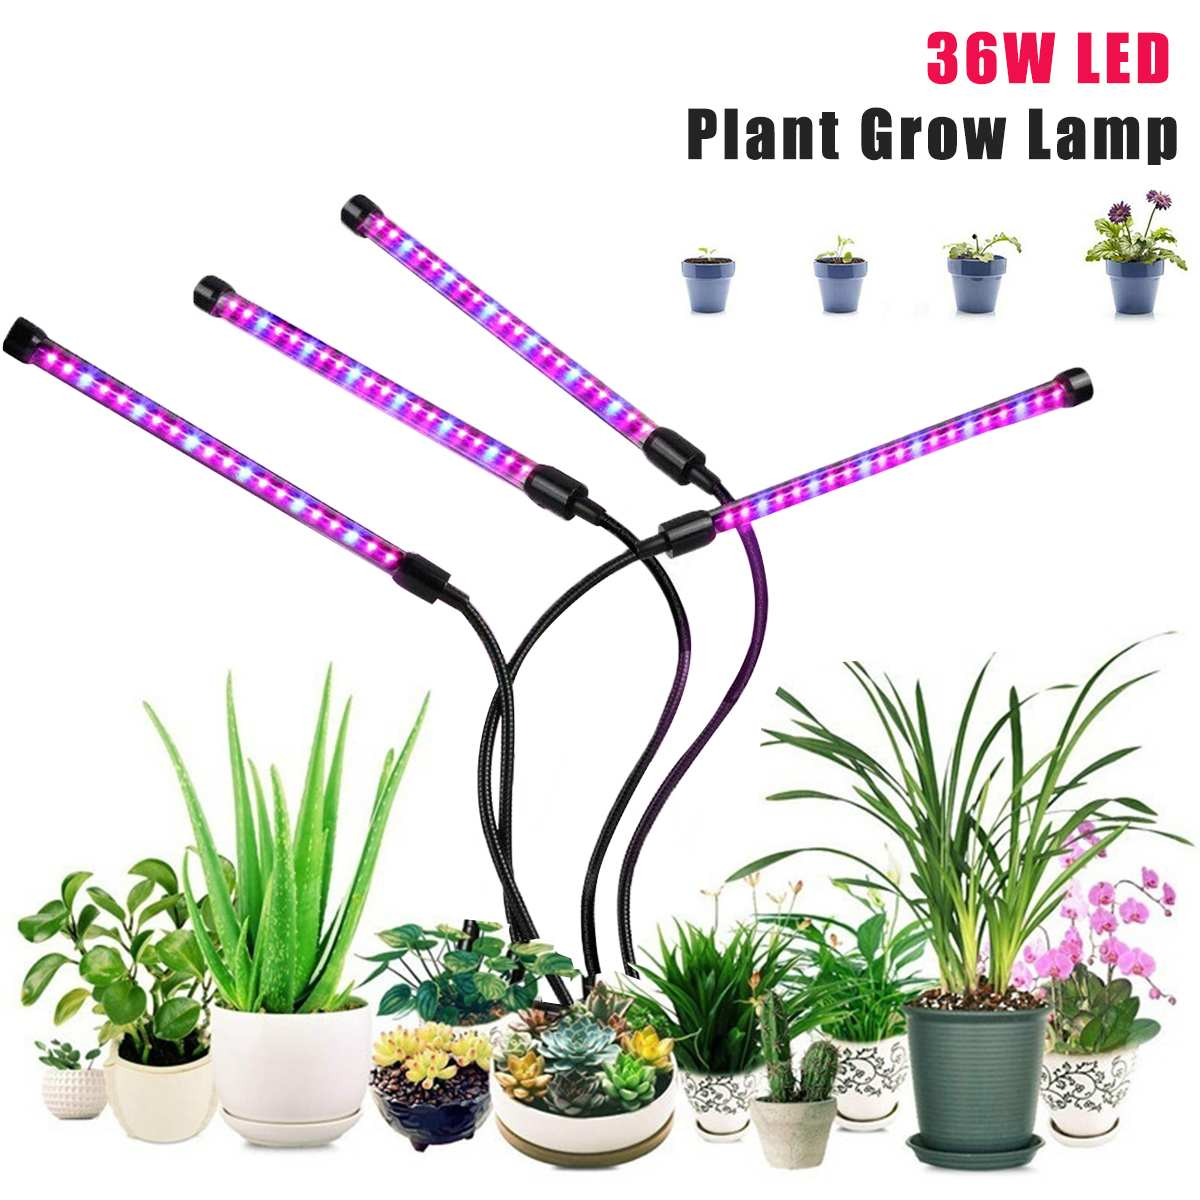 LED Grow Light 36W 5V Dimming Timed Plant Growth Light For Indoor Vegetable Flower Plant USB Power Full Spectrum Grow Lamp